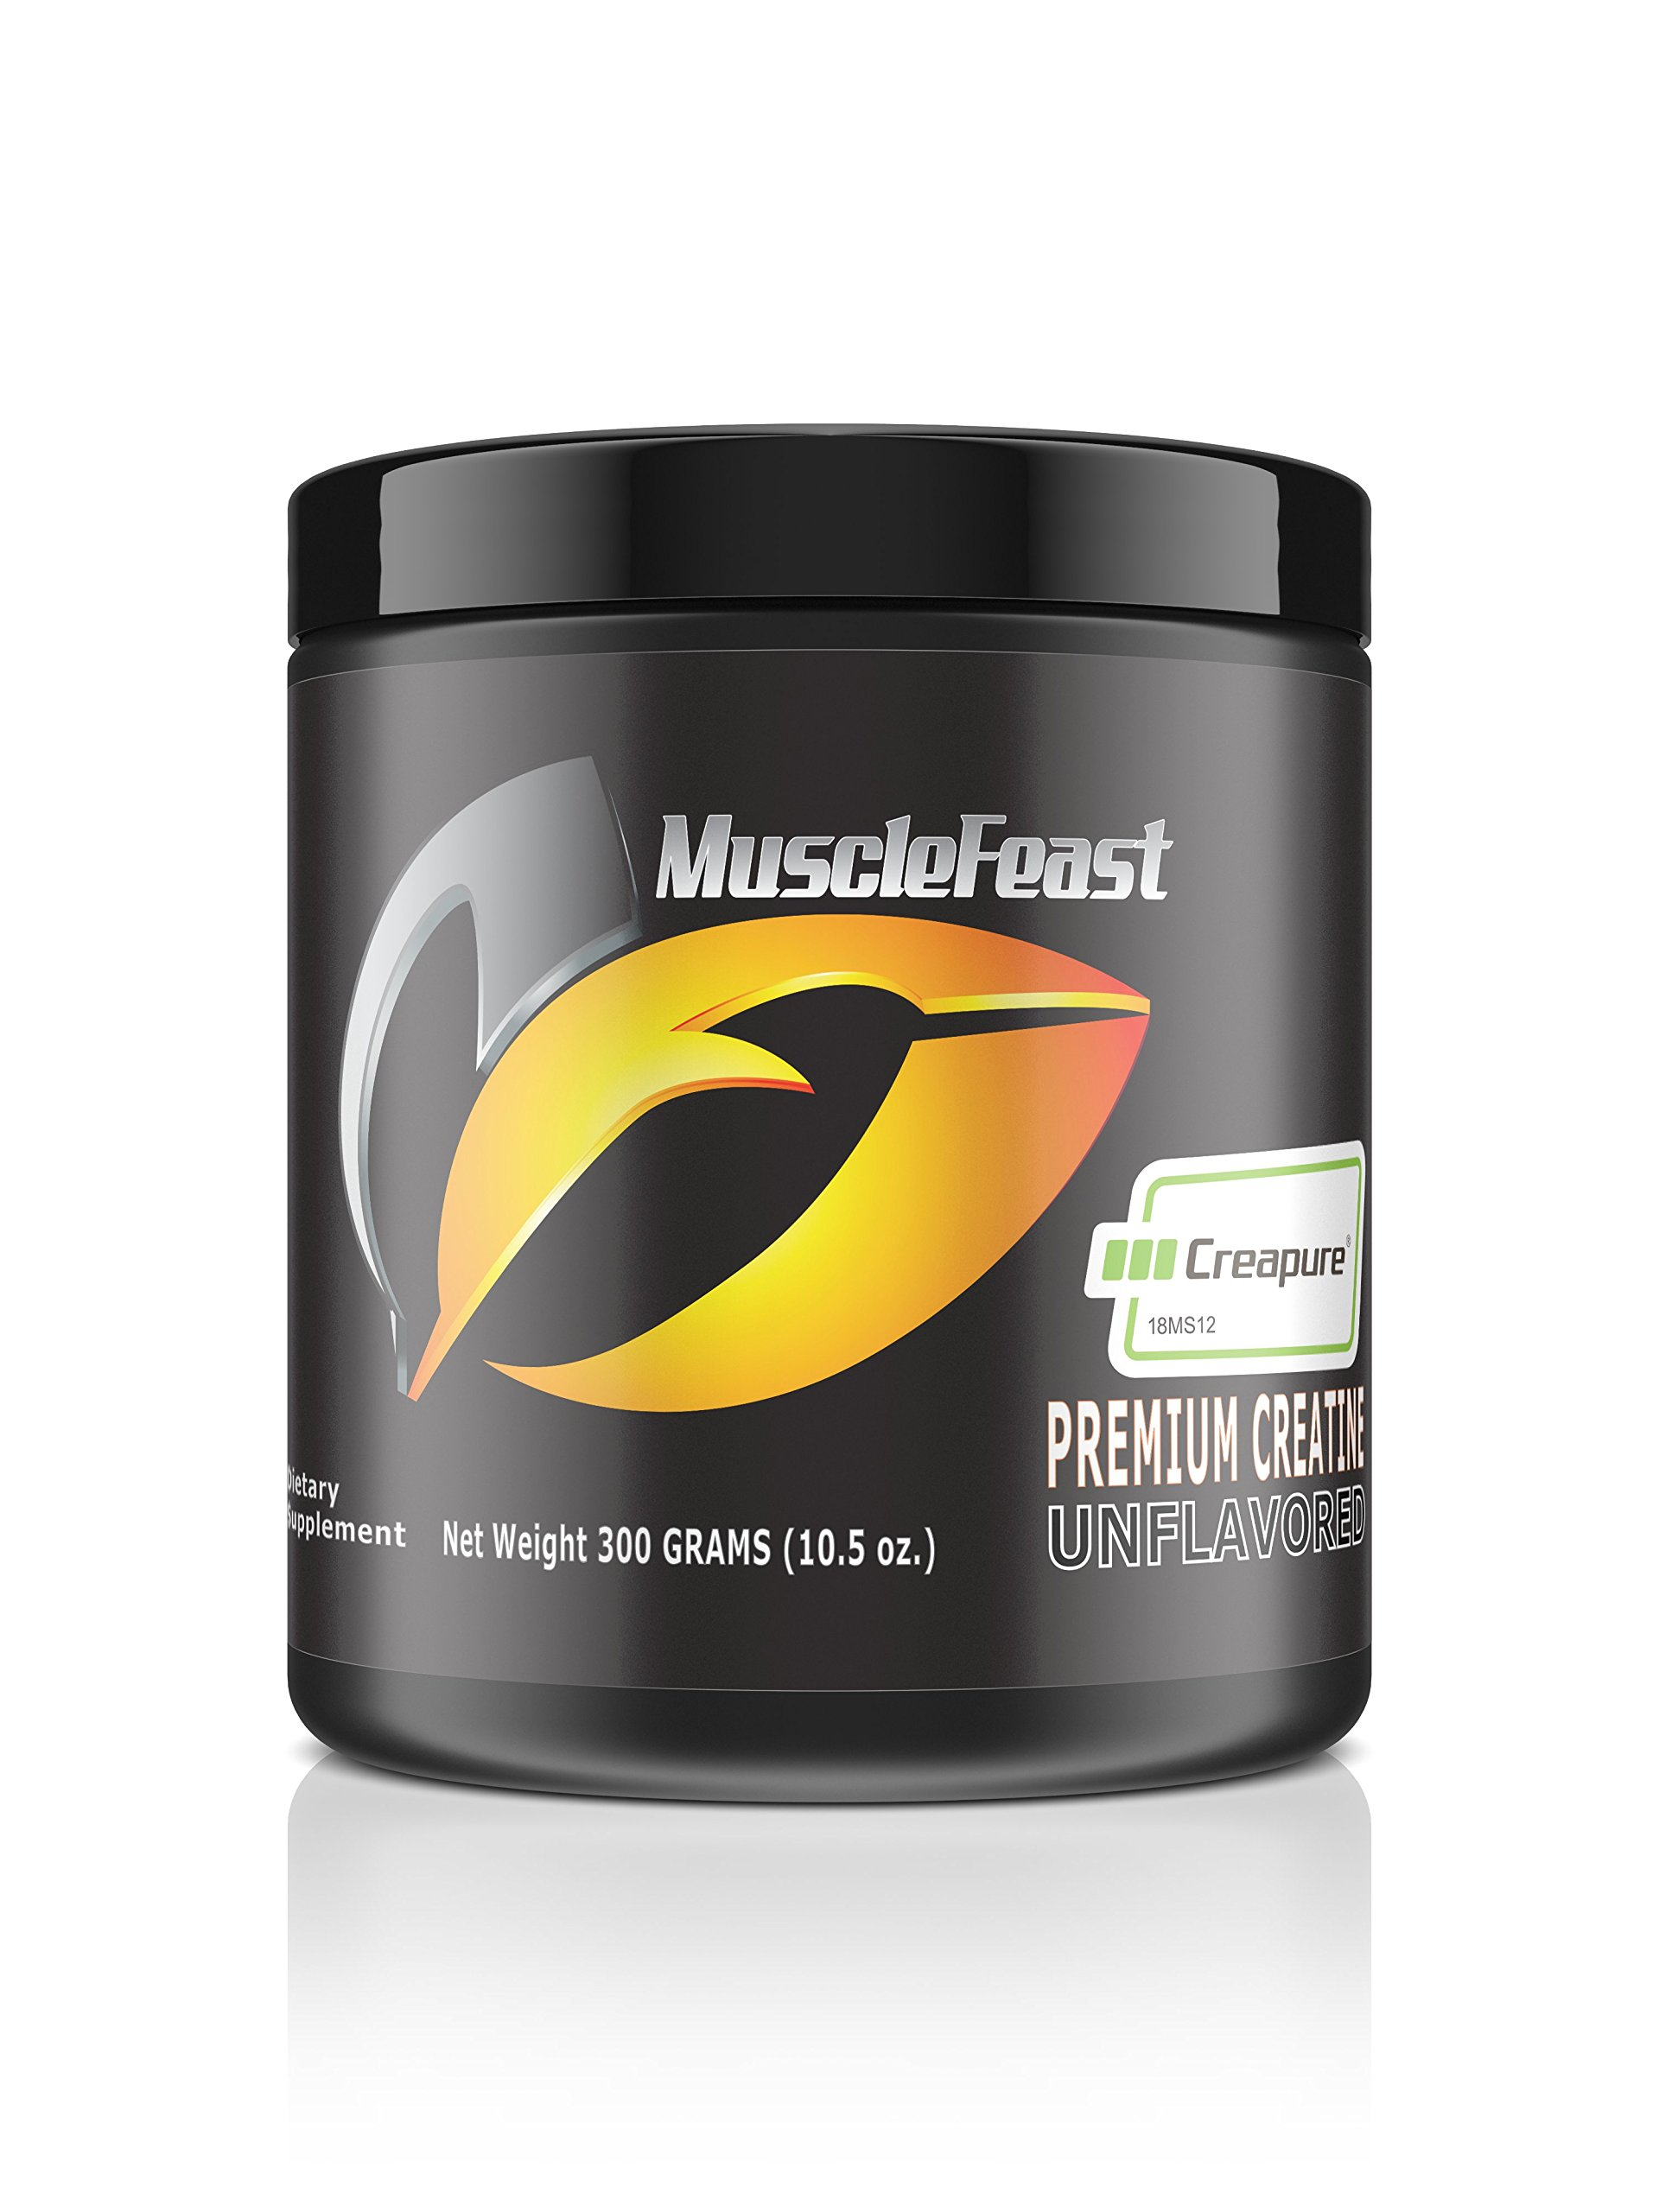 Creapure Creatine Monohydrate Powder - by Muscle Feast   Premium Pre-workout or Post-workout   Easy to Mix And Gluten-Free (300g, Unflavored)